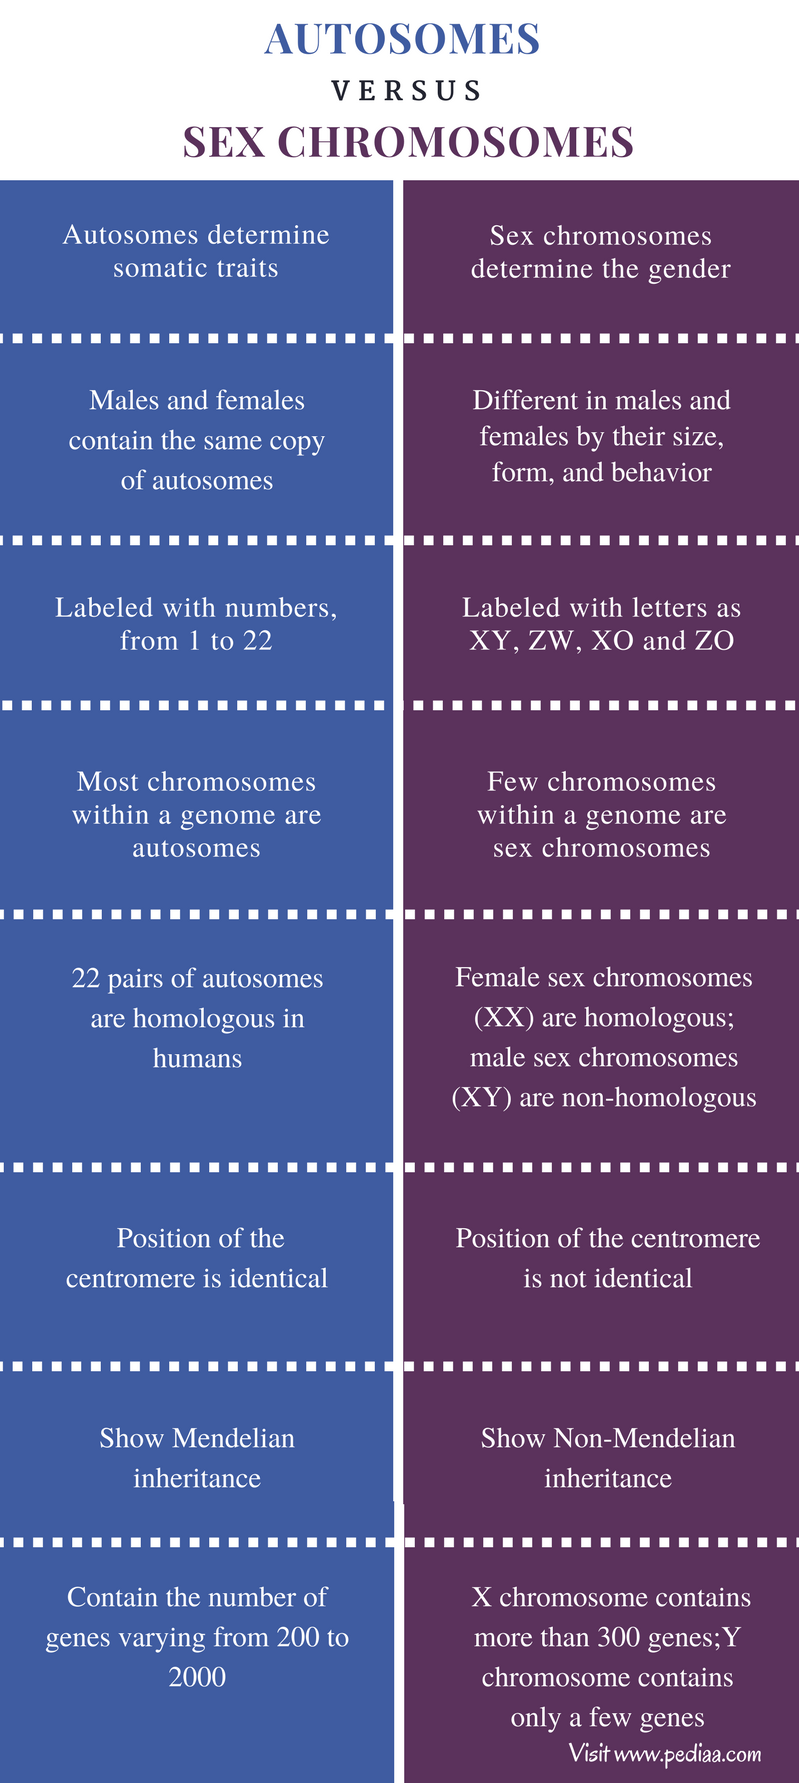 Difference between sex chromosomes and autosomes